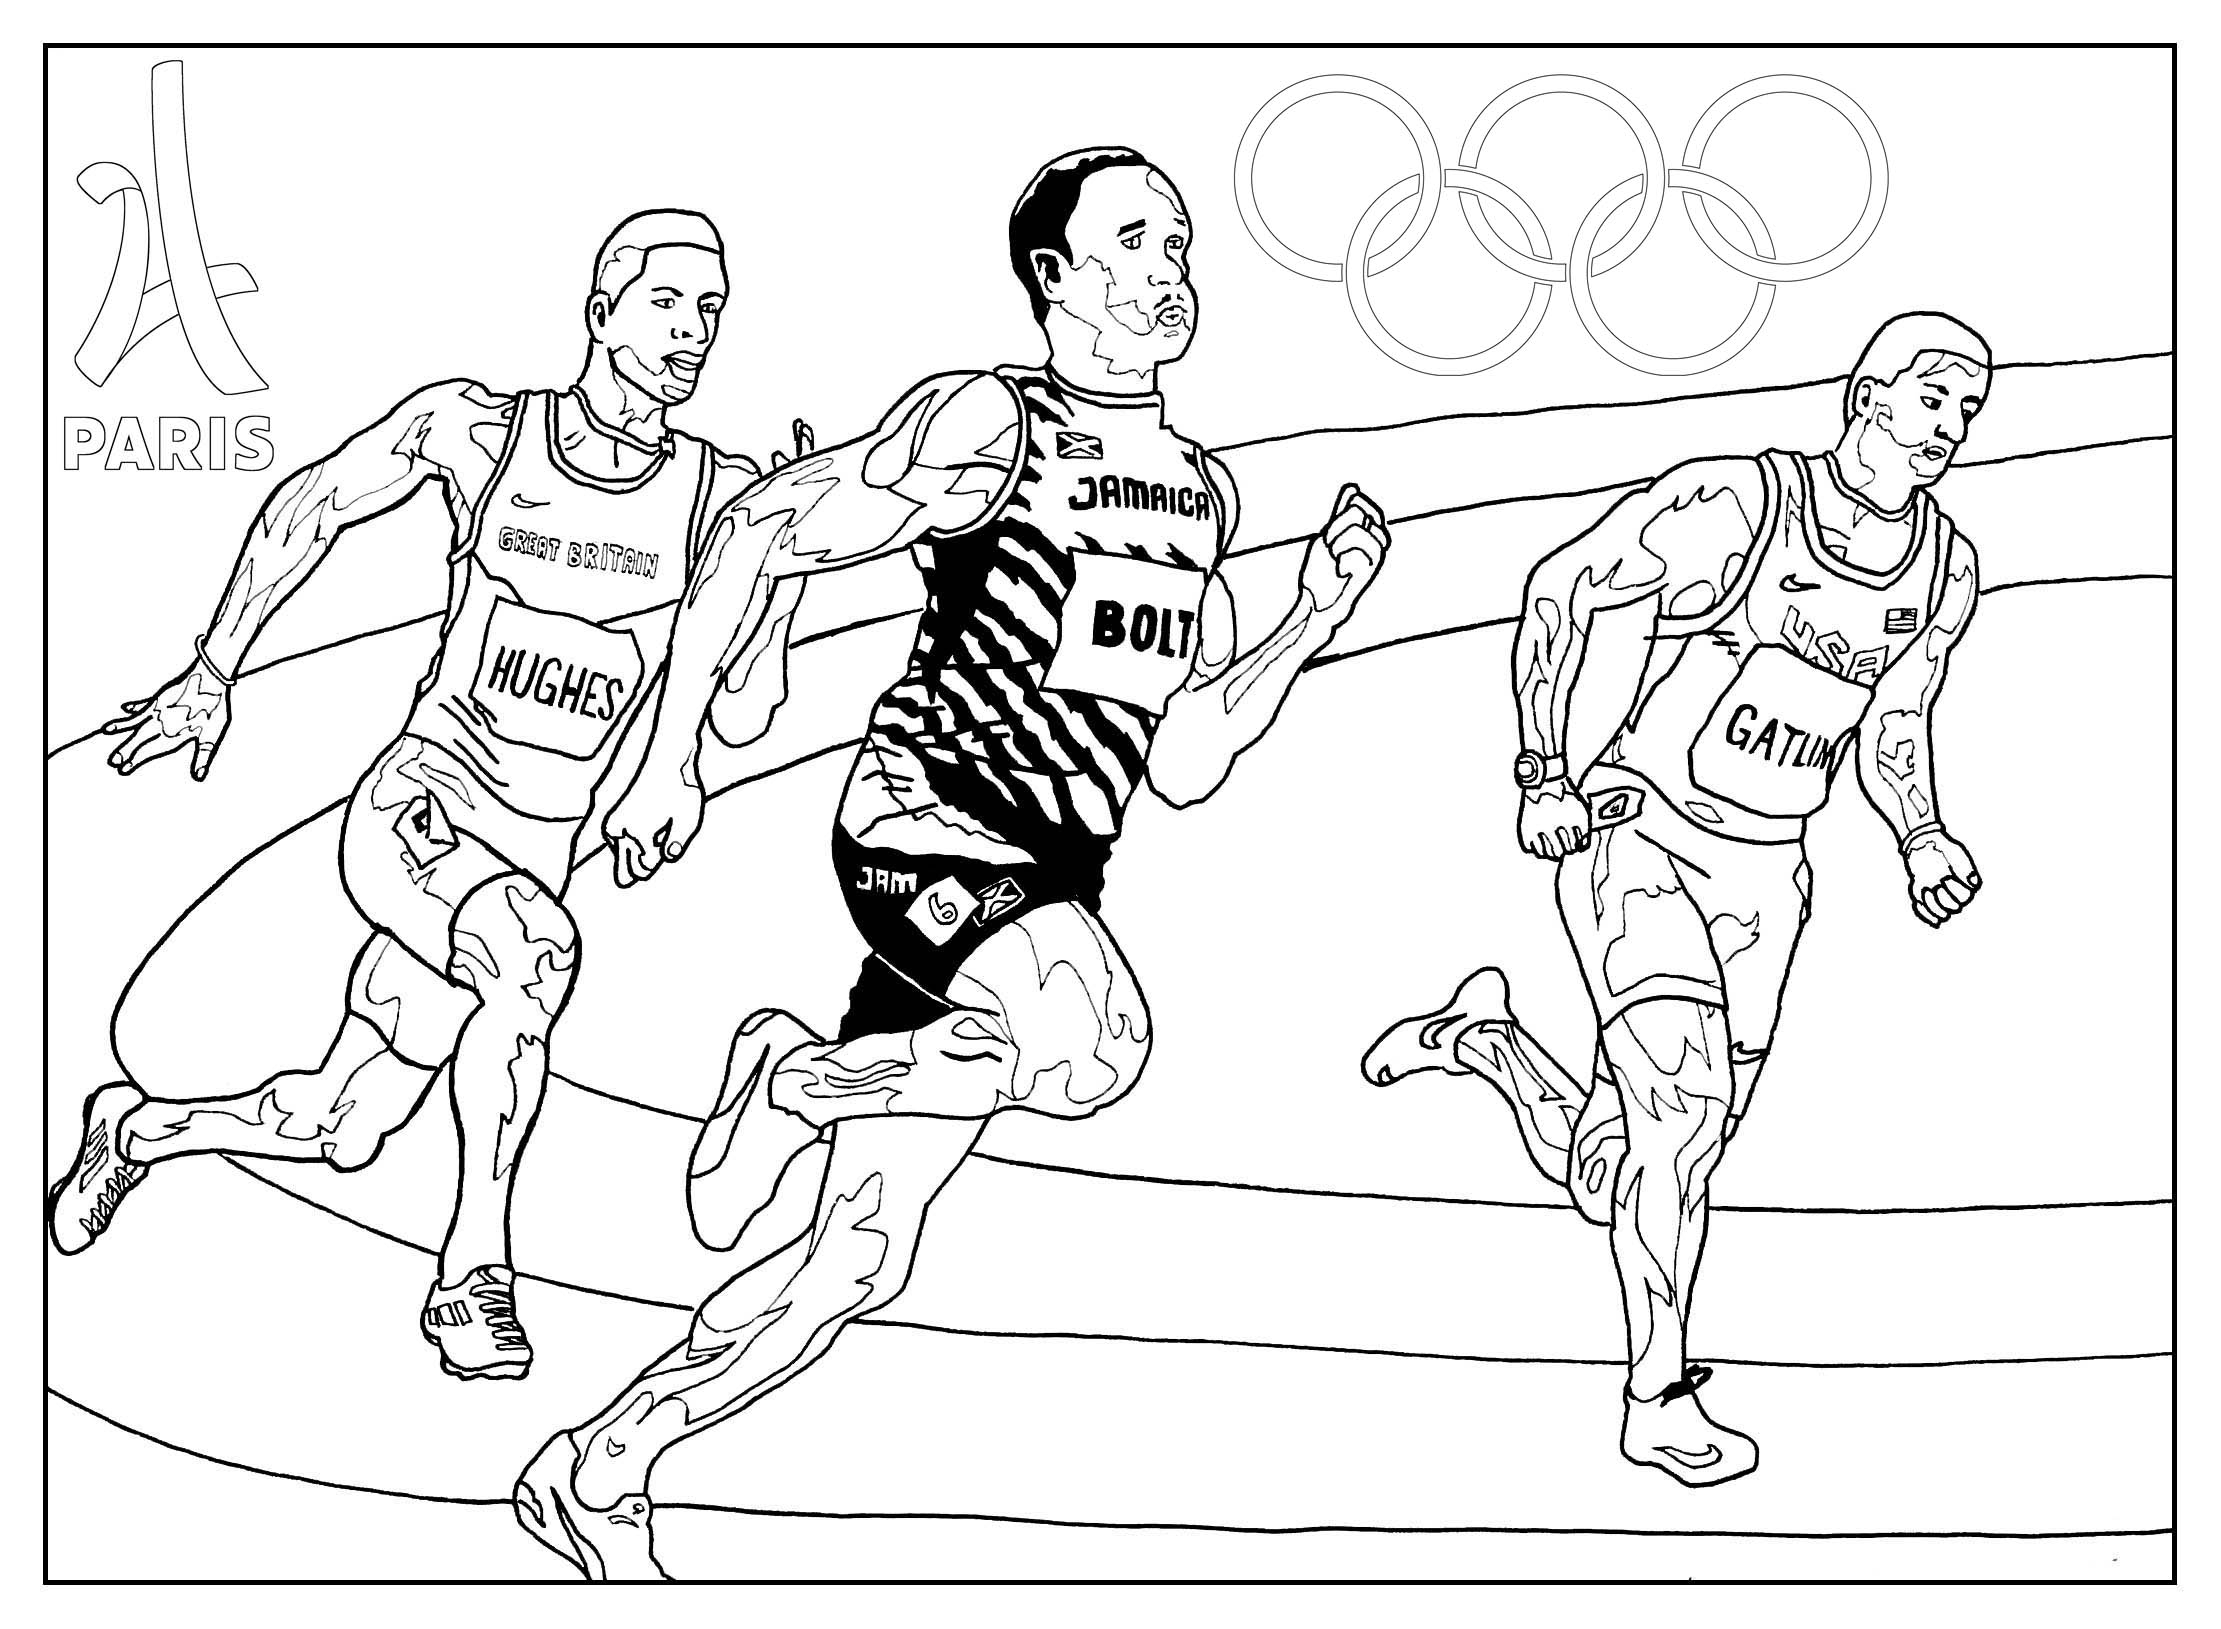 Games athletics Paris 2024 Olympic & Sport Adult Coloring Pages Collection Of Olympic Games Gymnastic Paris 2024 Olympic & Sport Adult to Print